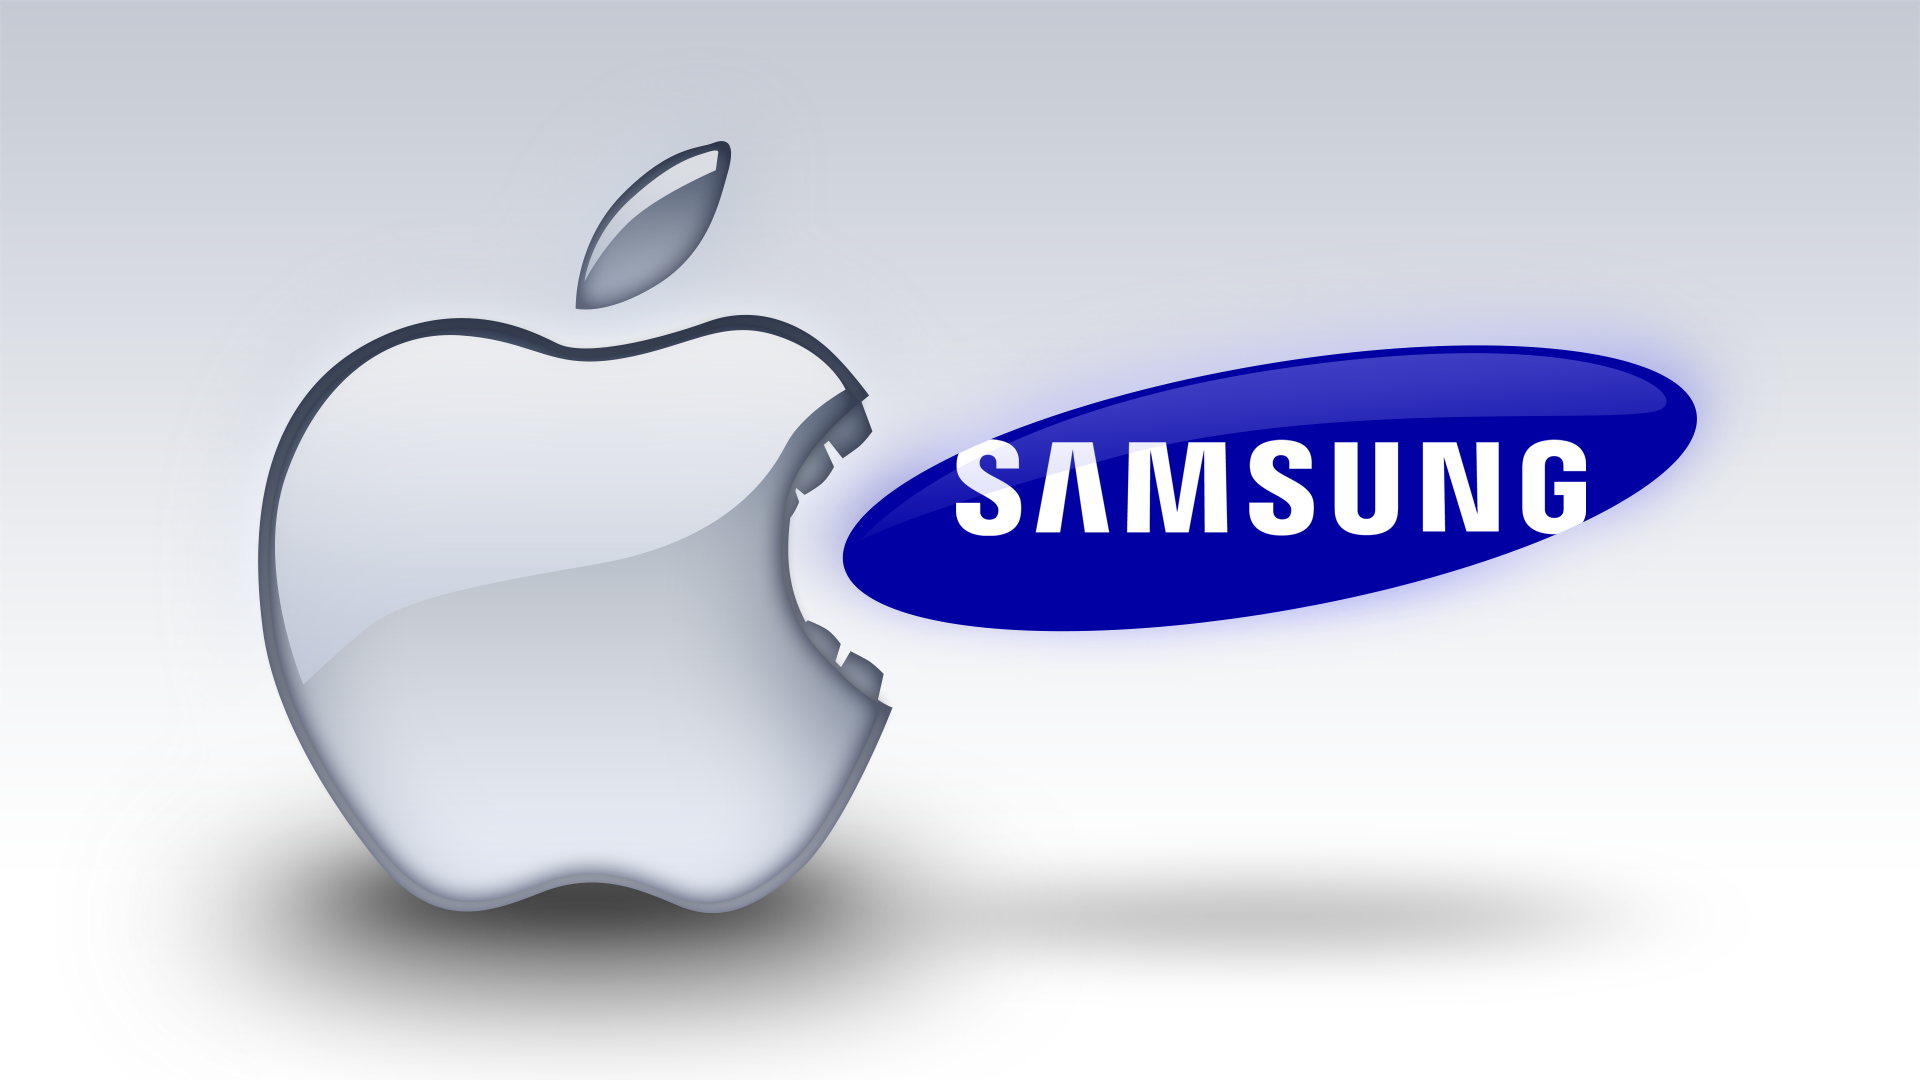 essay on apple vs samsung Home judges apple inc v samsung electronics co ltd et al c 11-1846 & c 12-0630 due to the level of interest in these cases, this web page has been created to notify journalists and interested members of the public of important news and information about access to proceedings and to case information.